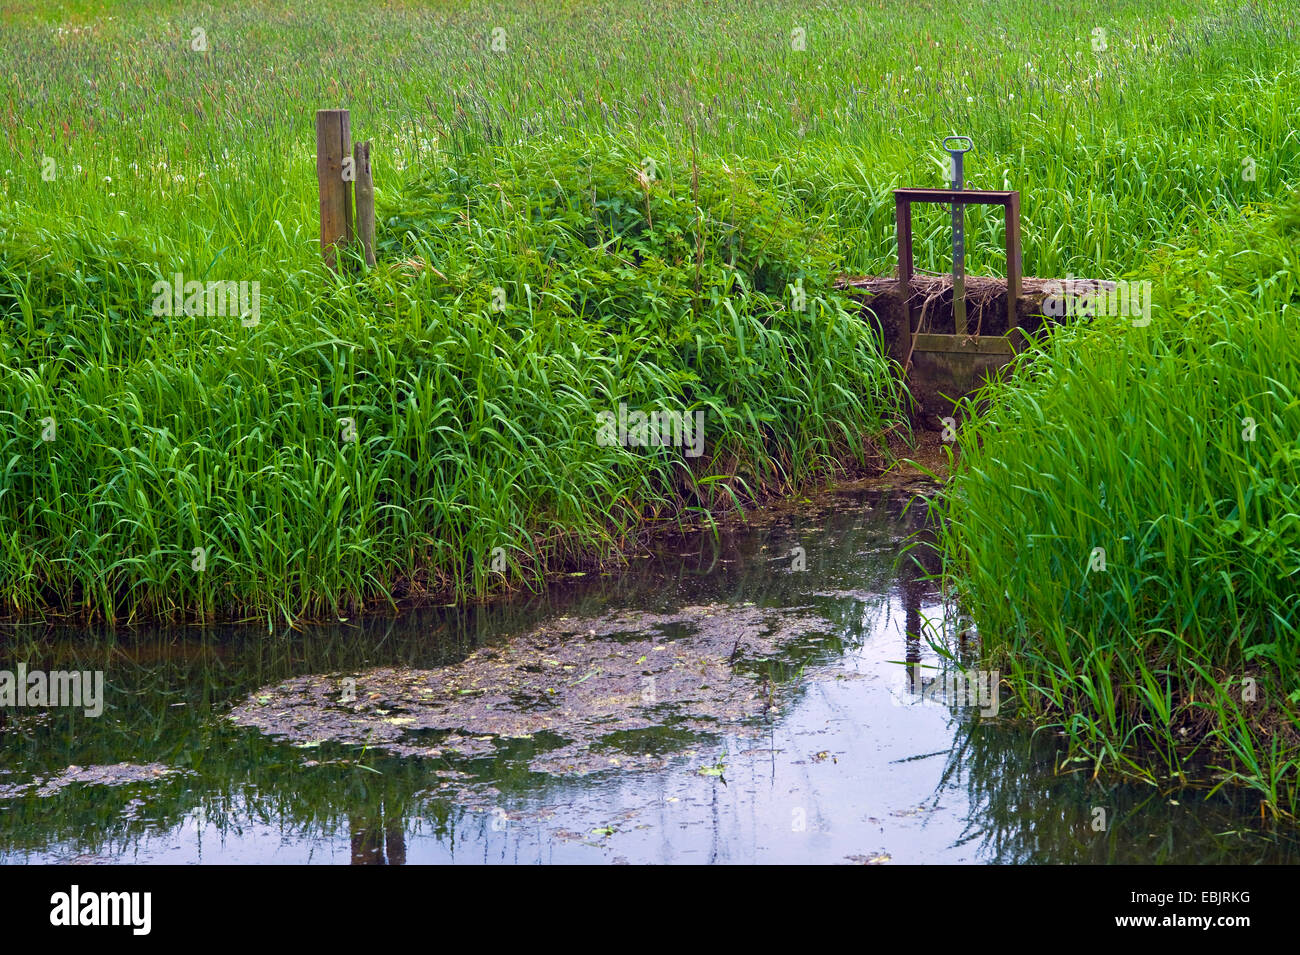 little sluice at a ditch through the Wuemme meadows, Germany, Bremen-Borgfeld - Stock Image